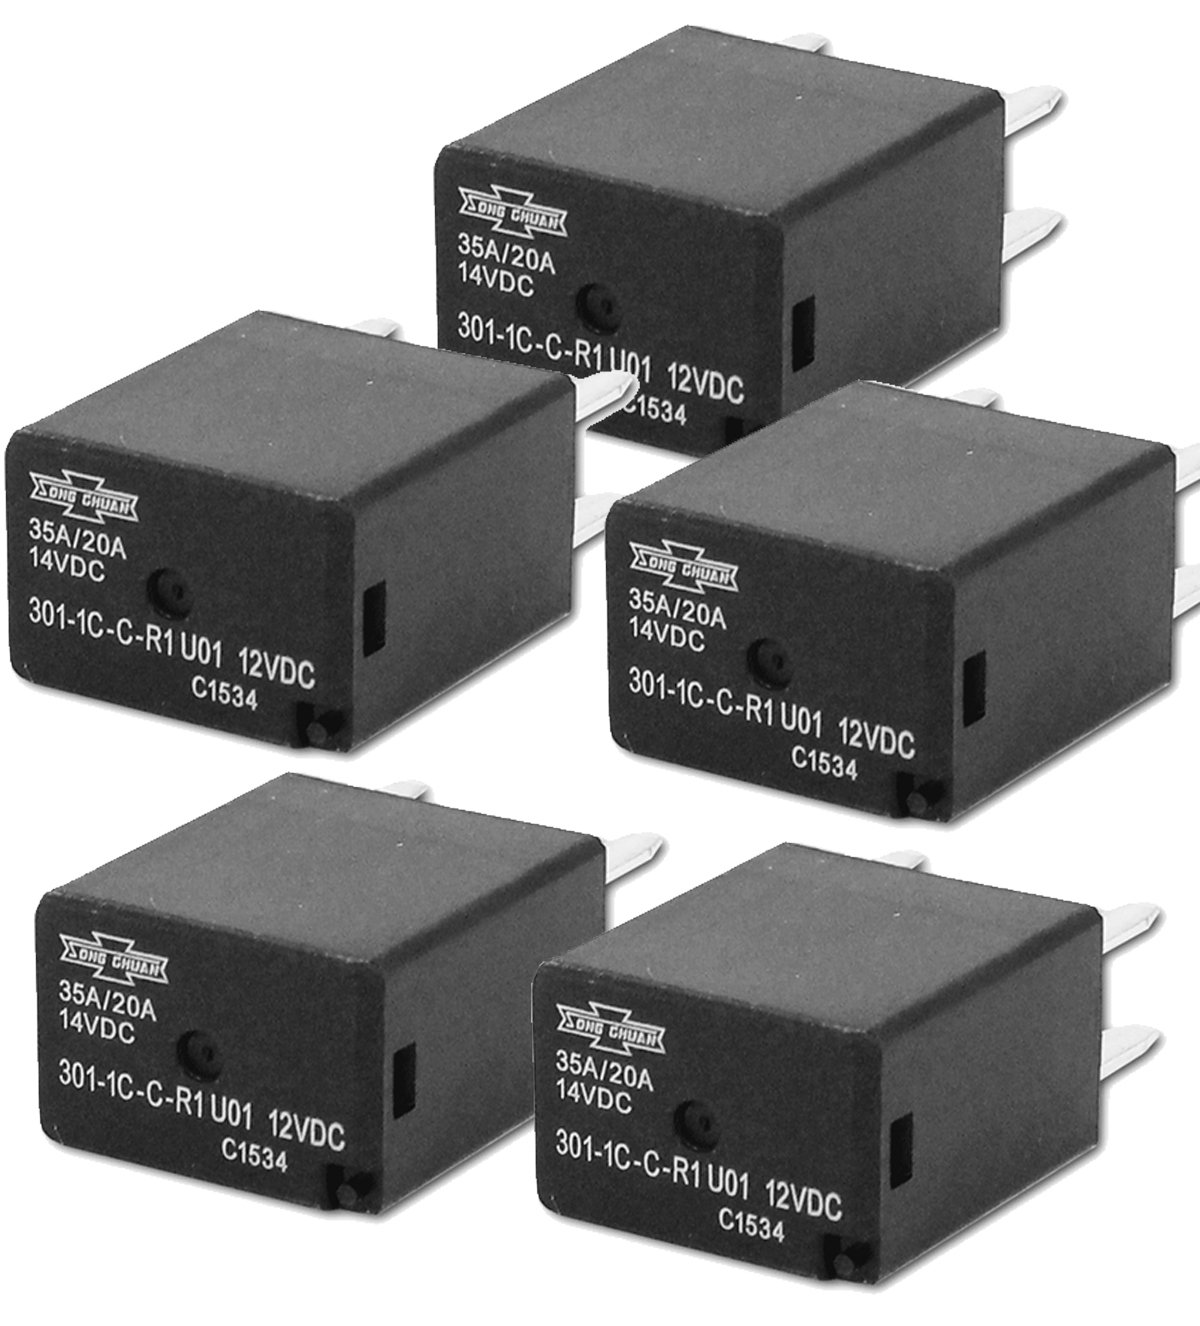 Automotive Relays SPDT 35A 12VDC (5 pieces) by Song Chuan (Image #1)